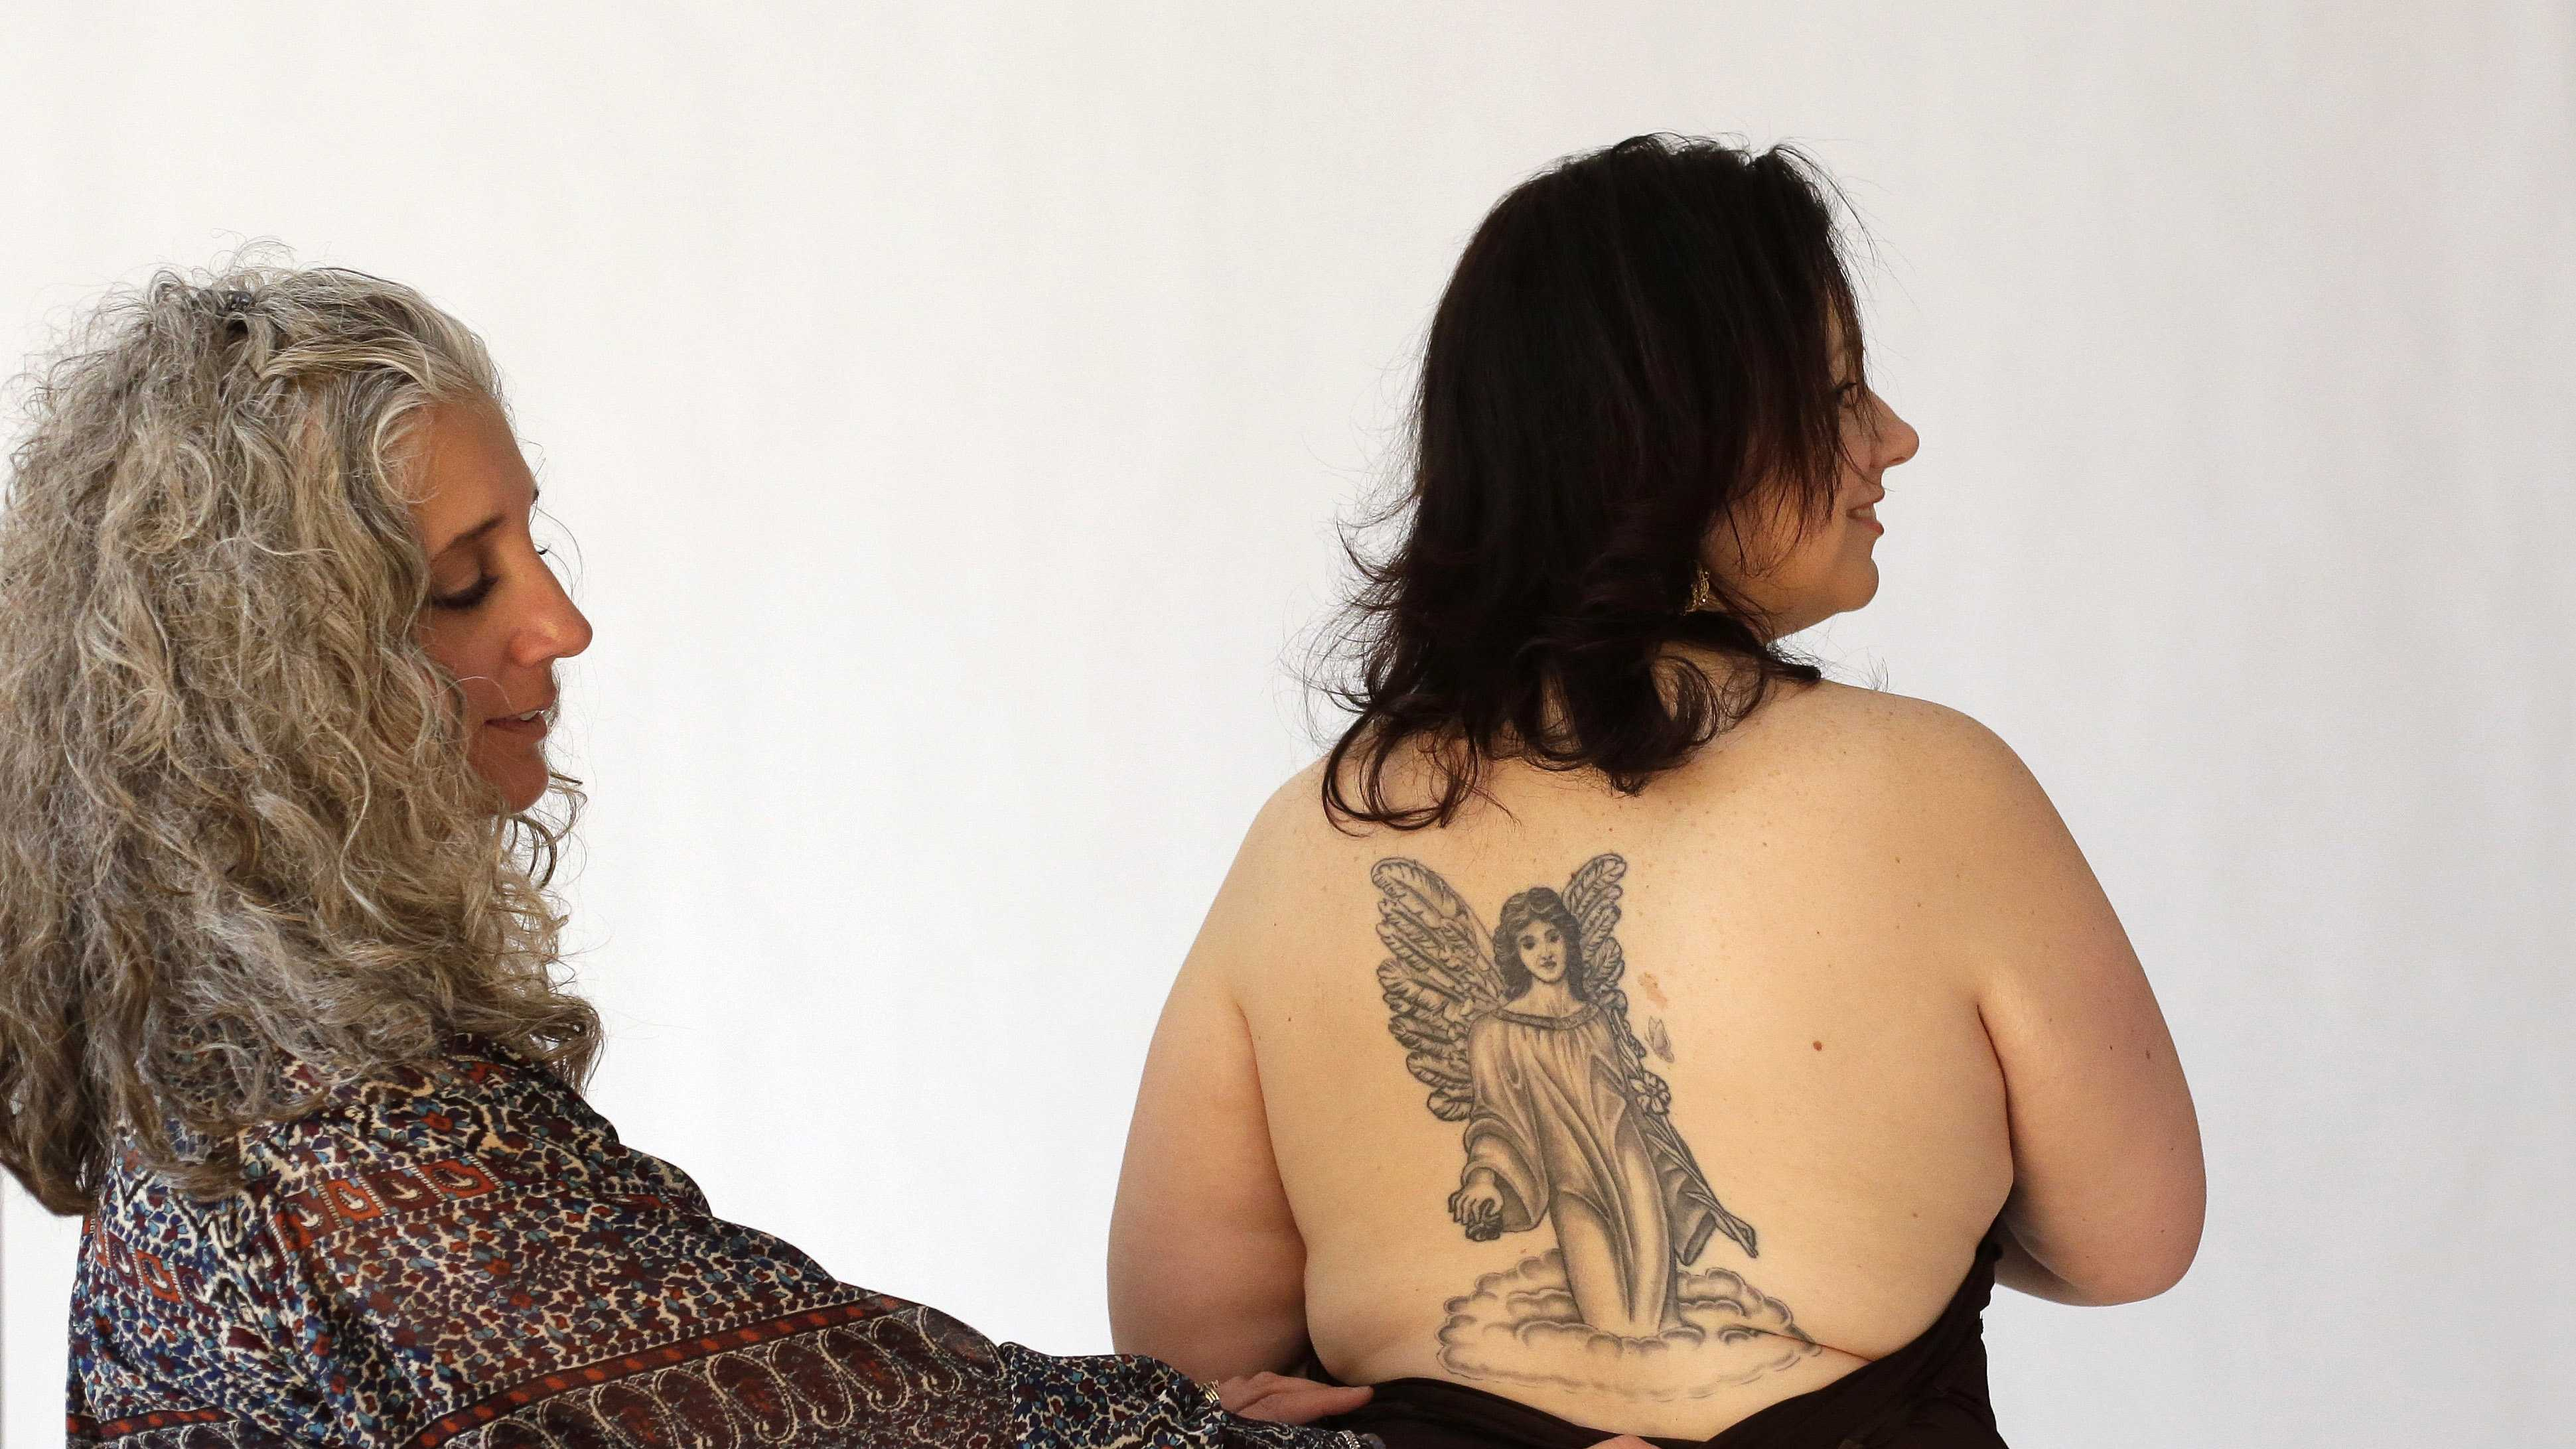 Stephanie Niewola, of Cranston, R.I., right, is directed by Paula McLaughlin, left, during a photo shoot for people with tattoos they had made in honor of those killed or injured during the Station Nightclub fire, in West Warwick, R.I., in February of 2003. Photos from the shoot are to be displayed in an exhibit held to honor those killed or injured in the blaze that took 100 lives.